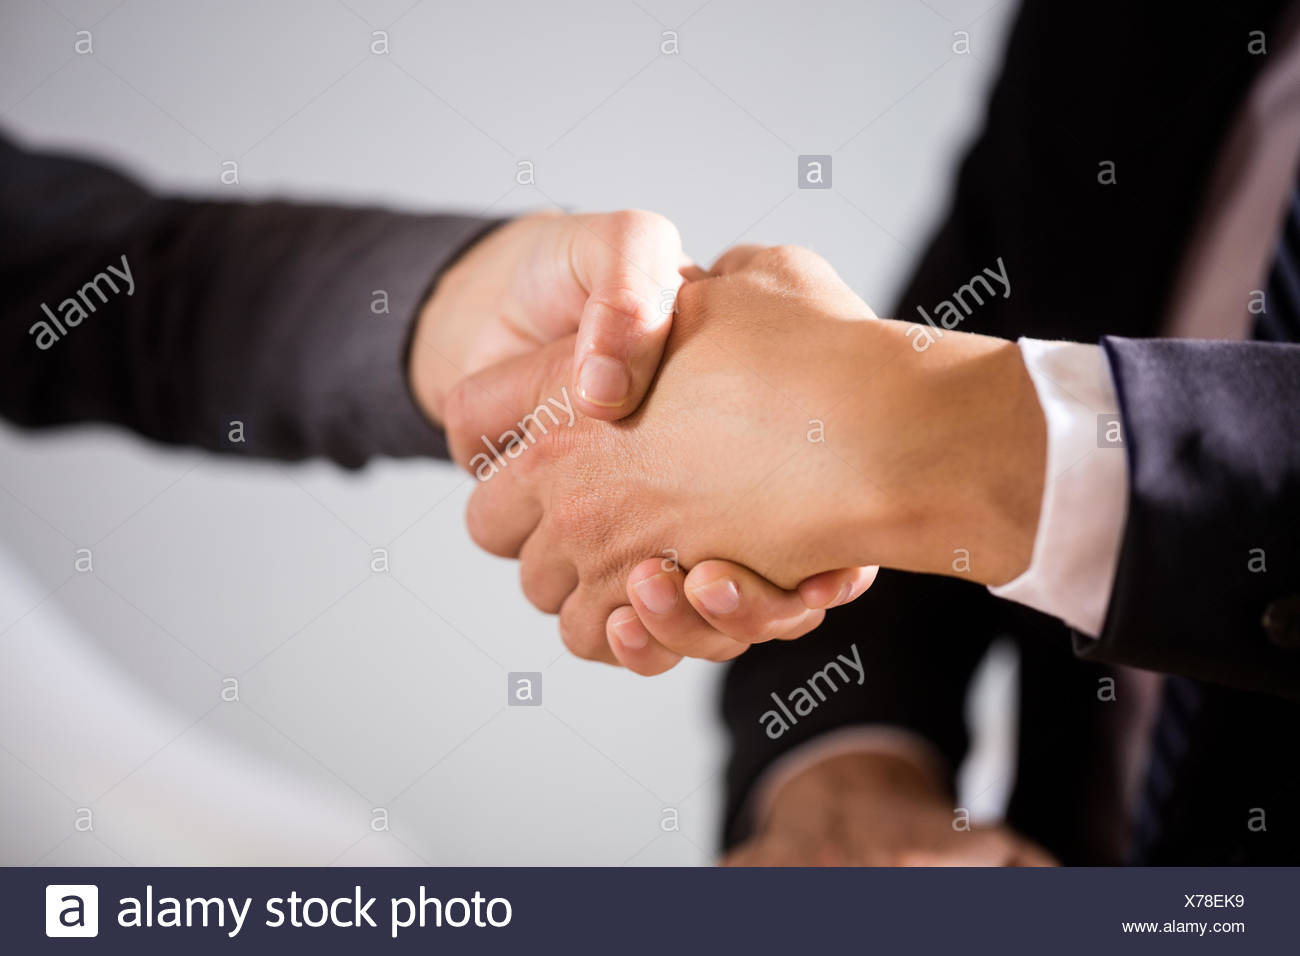 Close up view of business people shaking hands - Stock Image